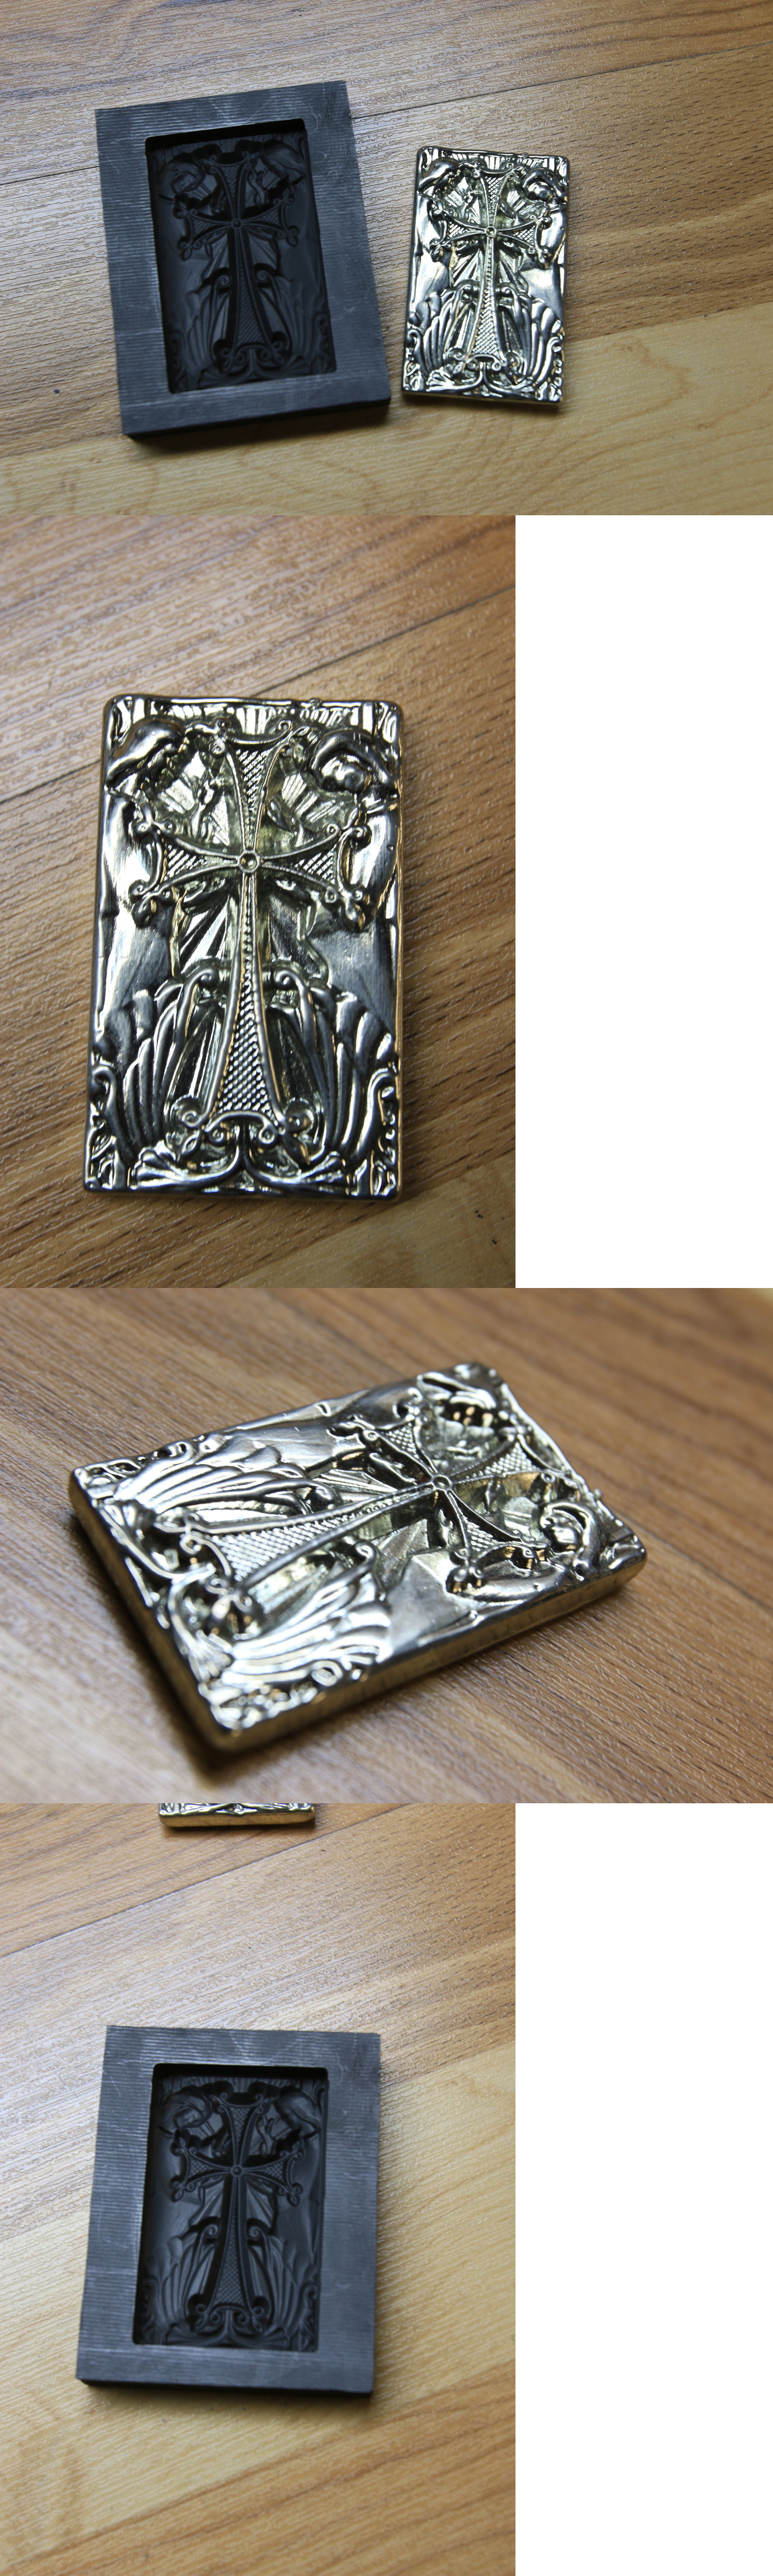 Jewelry Molds 67711: Stellar Cross And Angel Bar Graphite